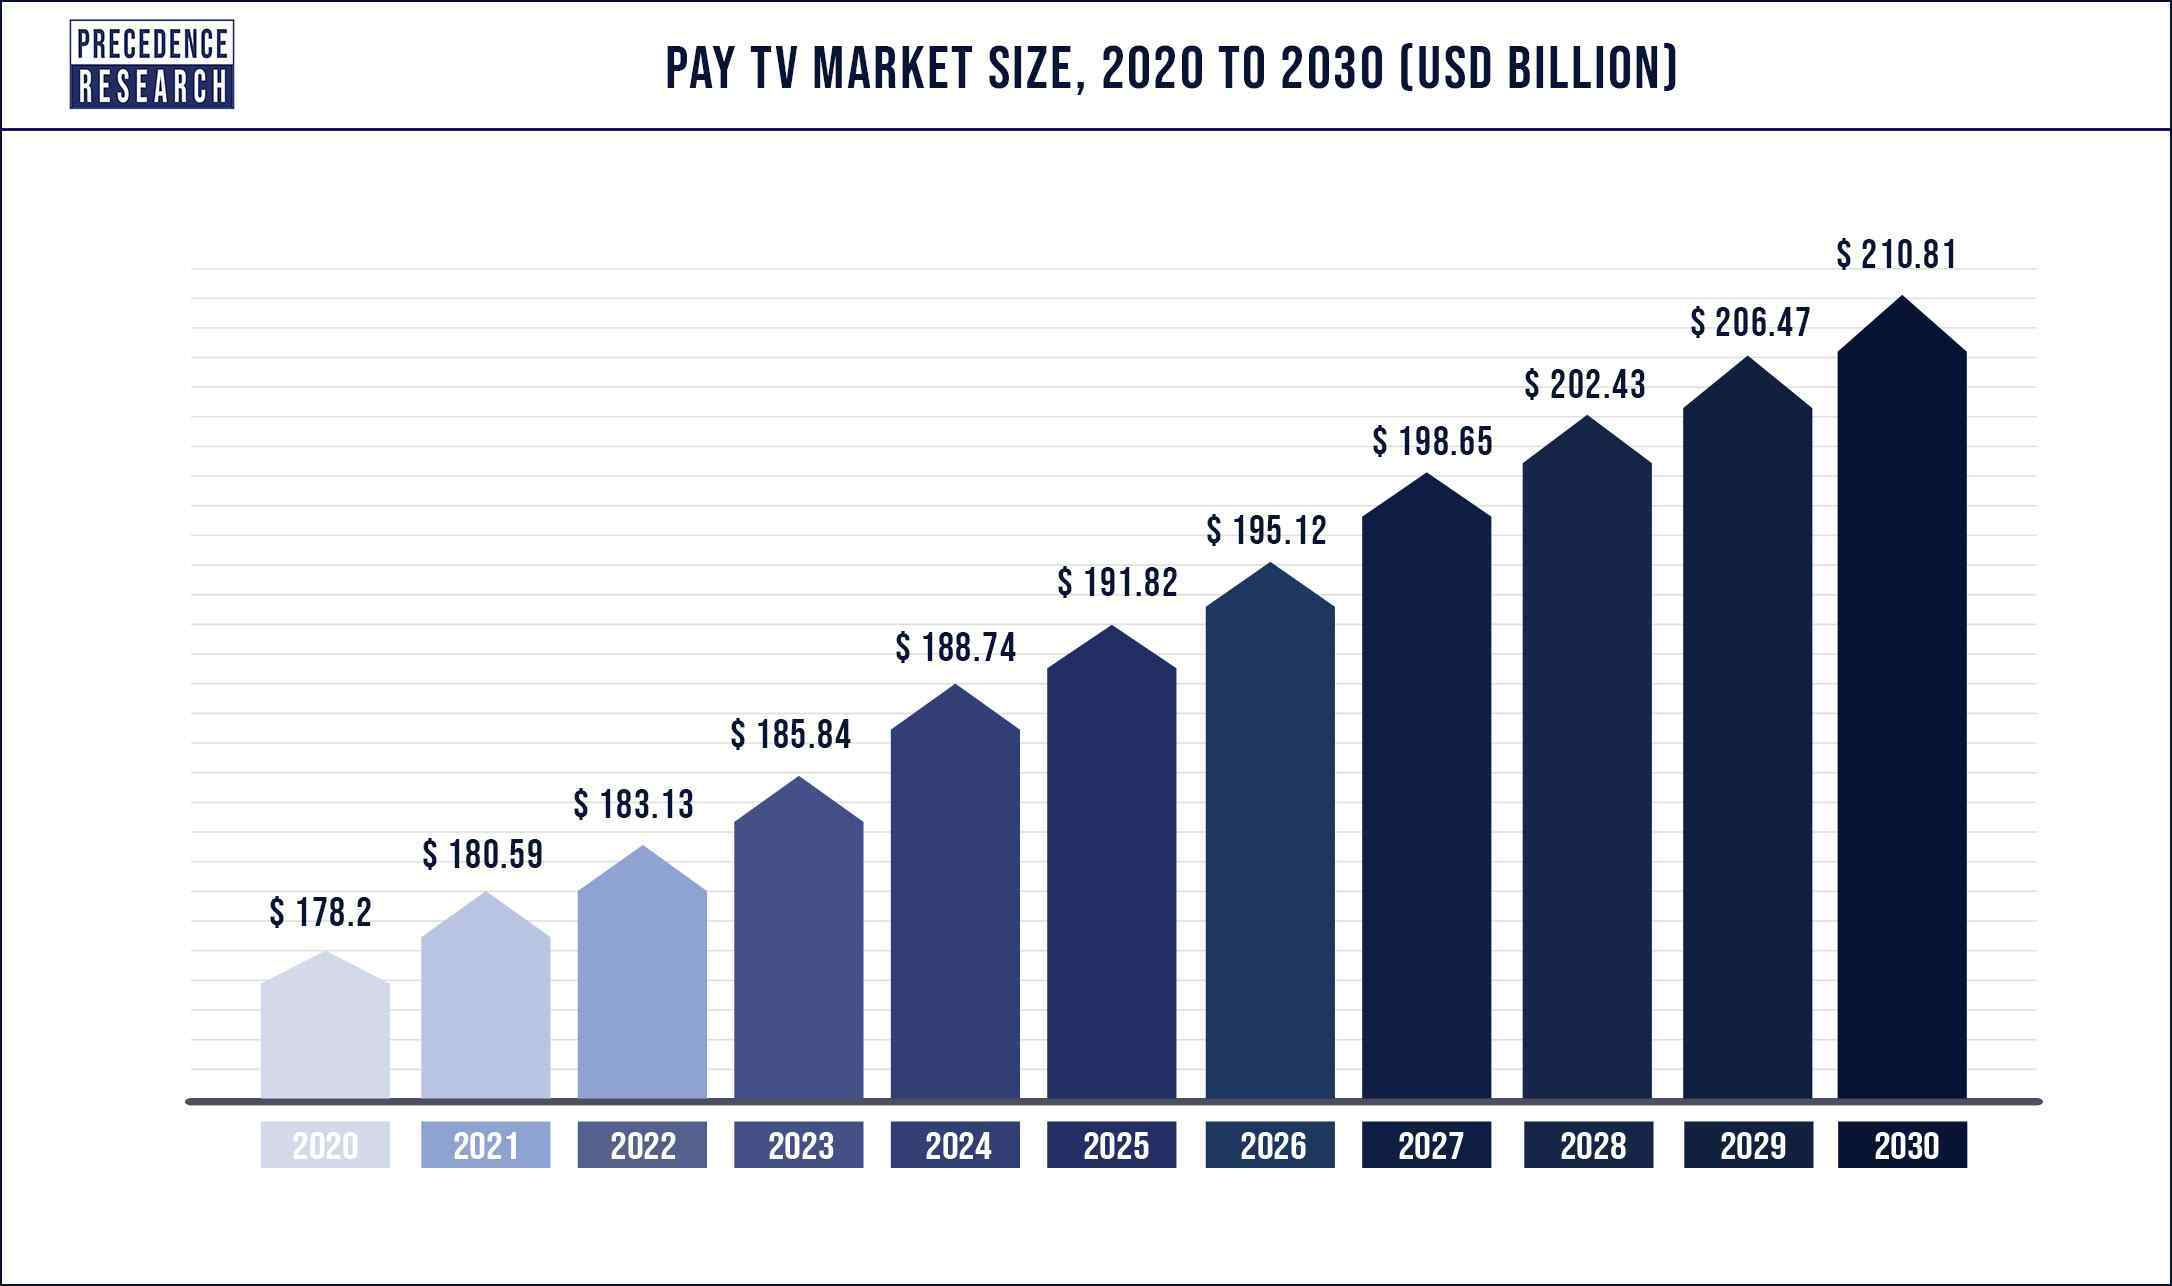 Pay TV Market Size 2020 to 2030